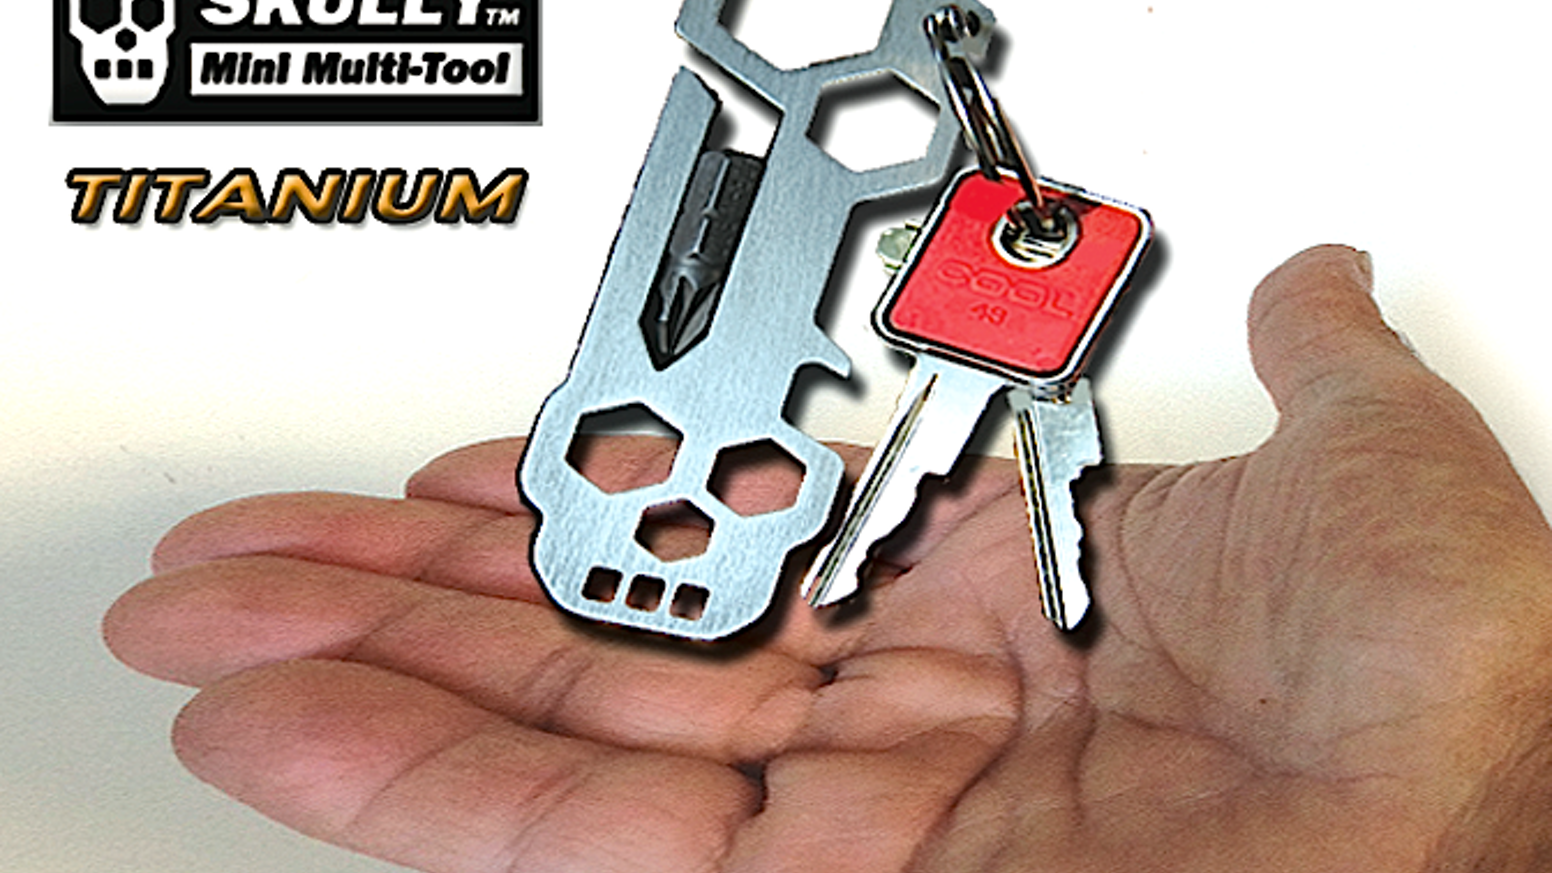 A Minimal Everyday Carry Multi-tool, With Maximum Efficiency. Ingeniously Engineered to help you get the job done!